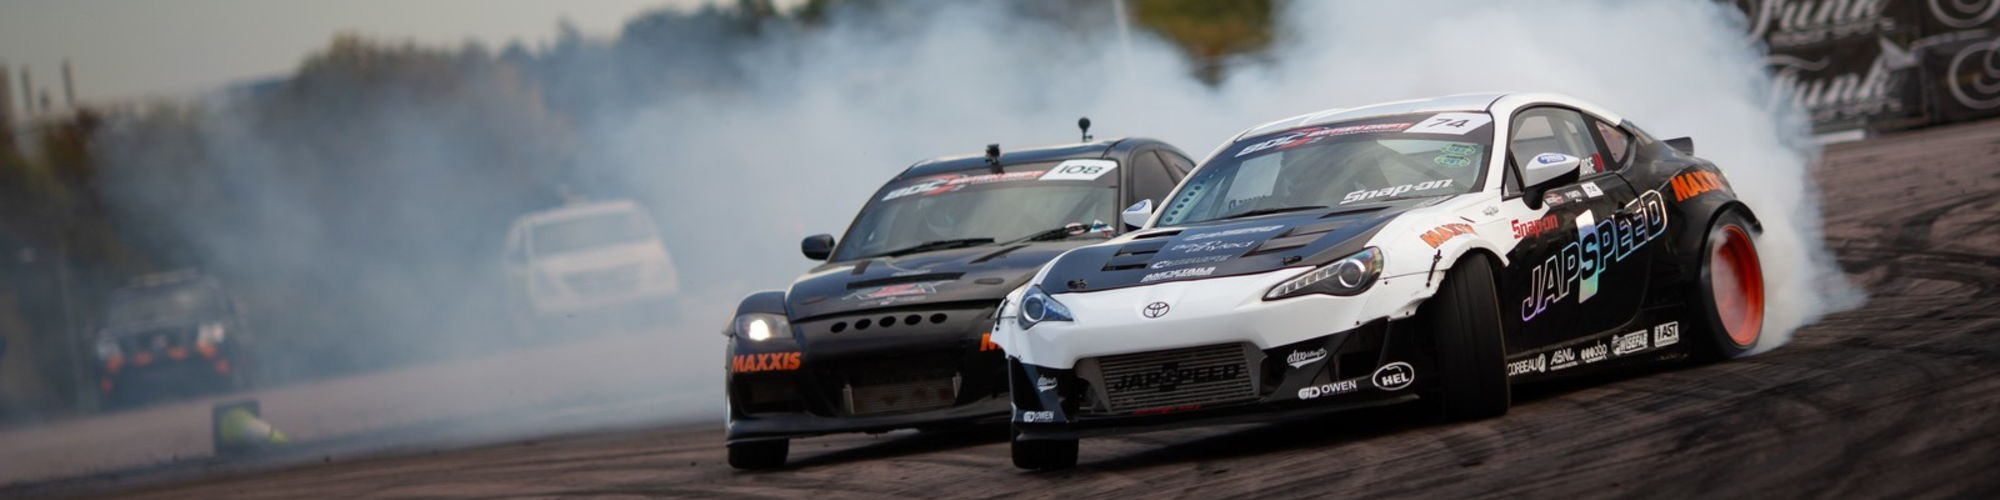 Japspeed cover image